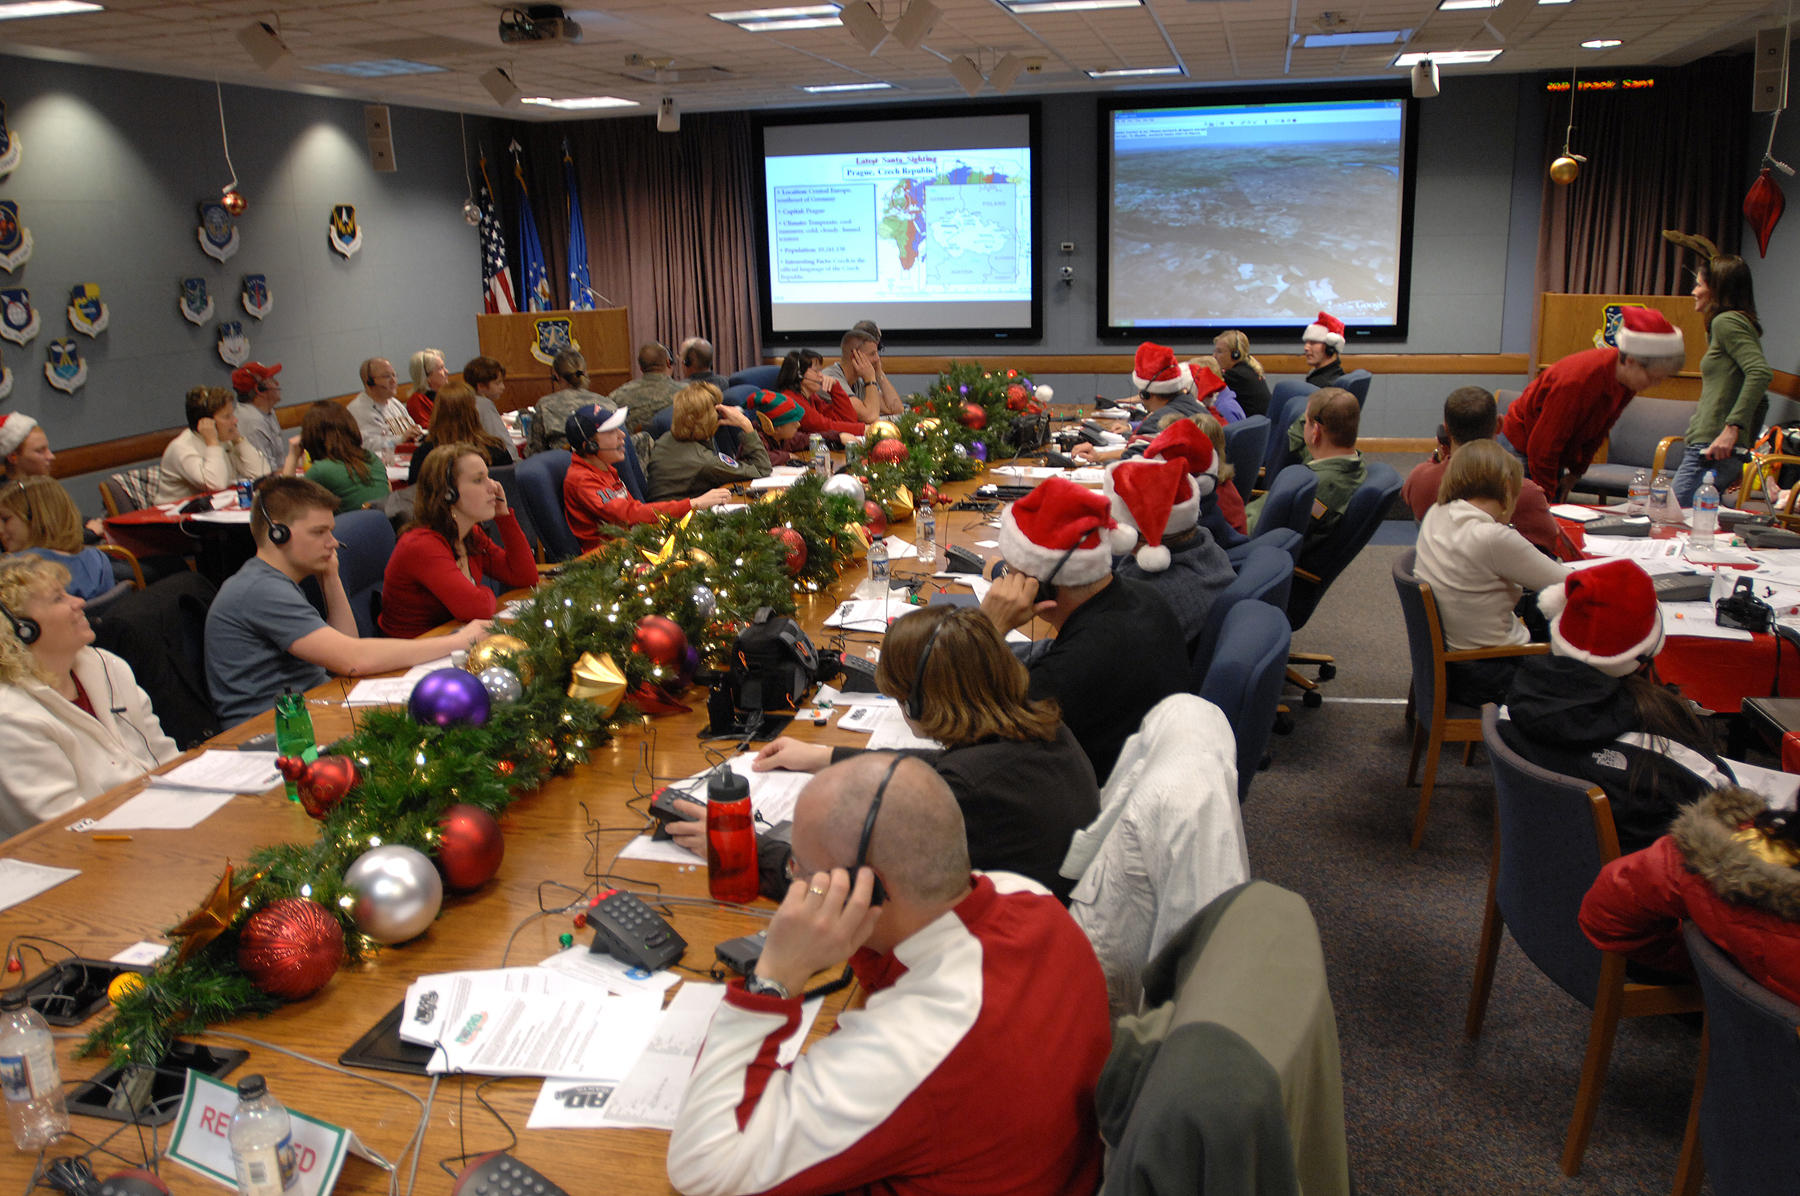 NORAD volunteers answer phone calls to their Santa hotline in 2007. The tradition of tracking Santa on his trip around the world started in 1955 by accident